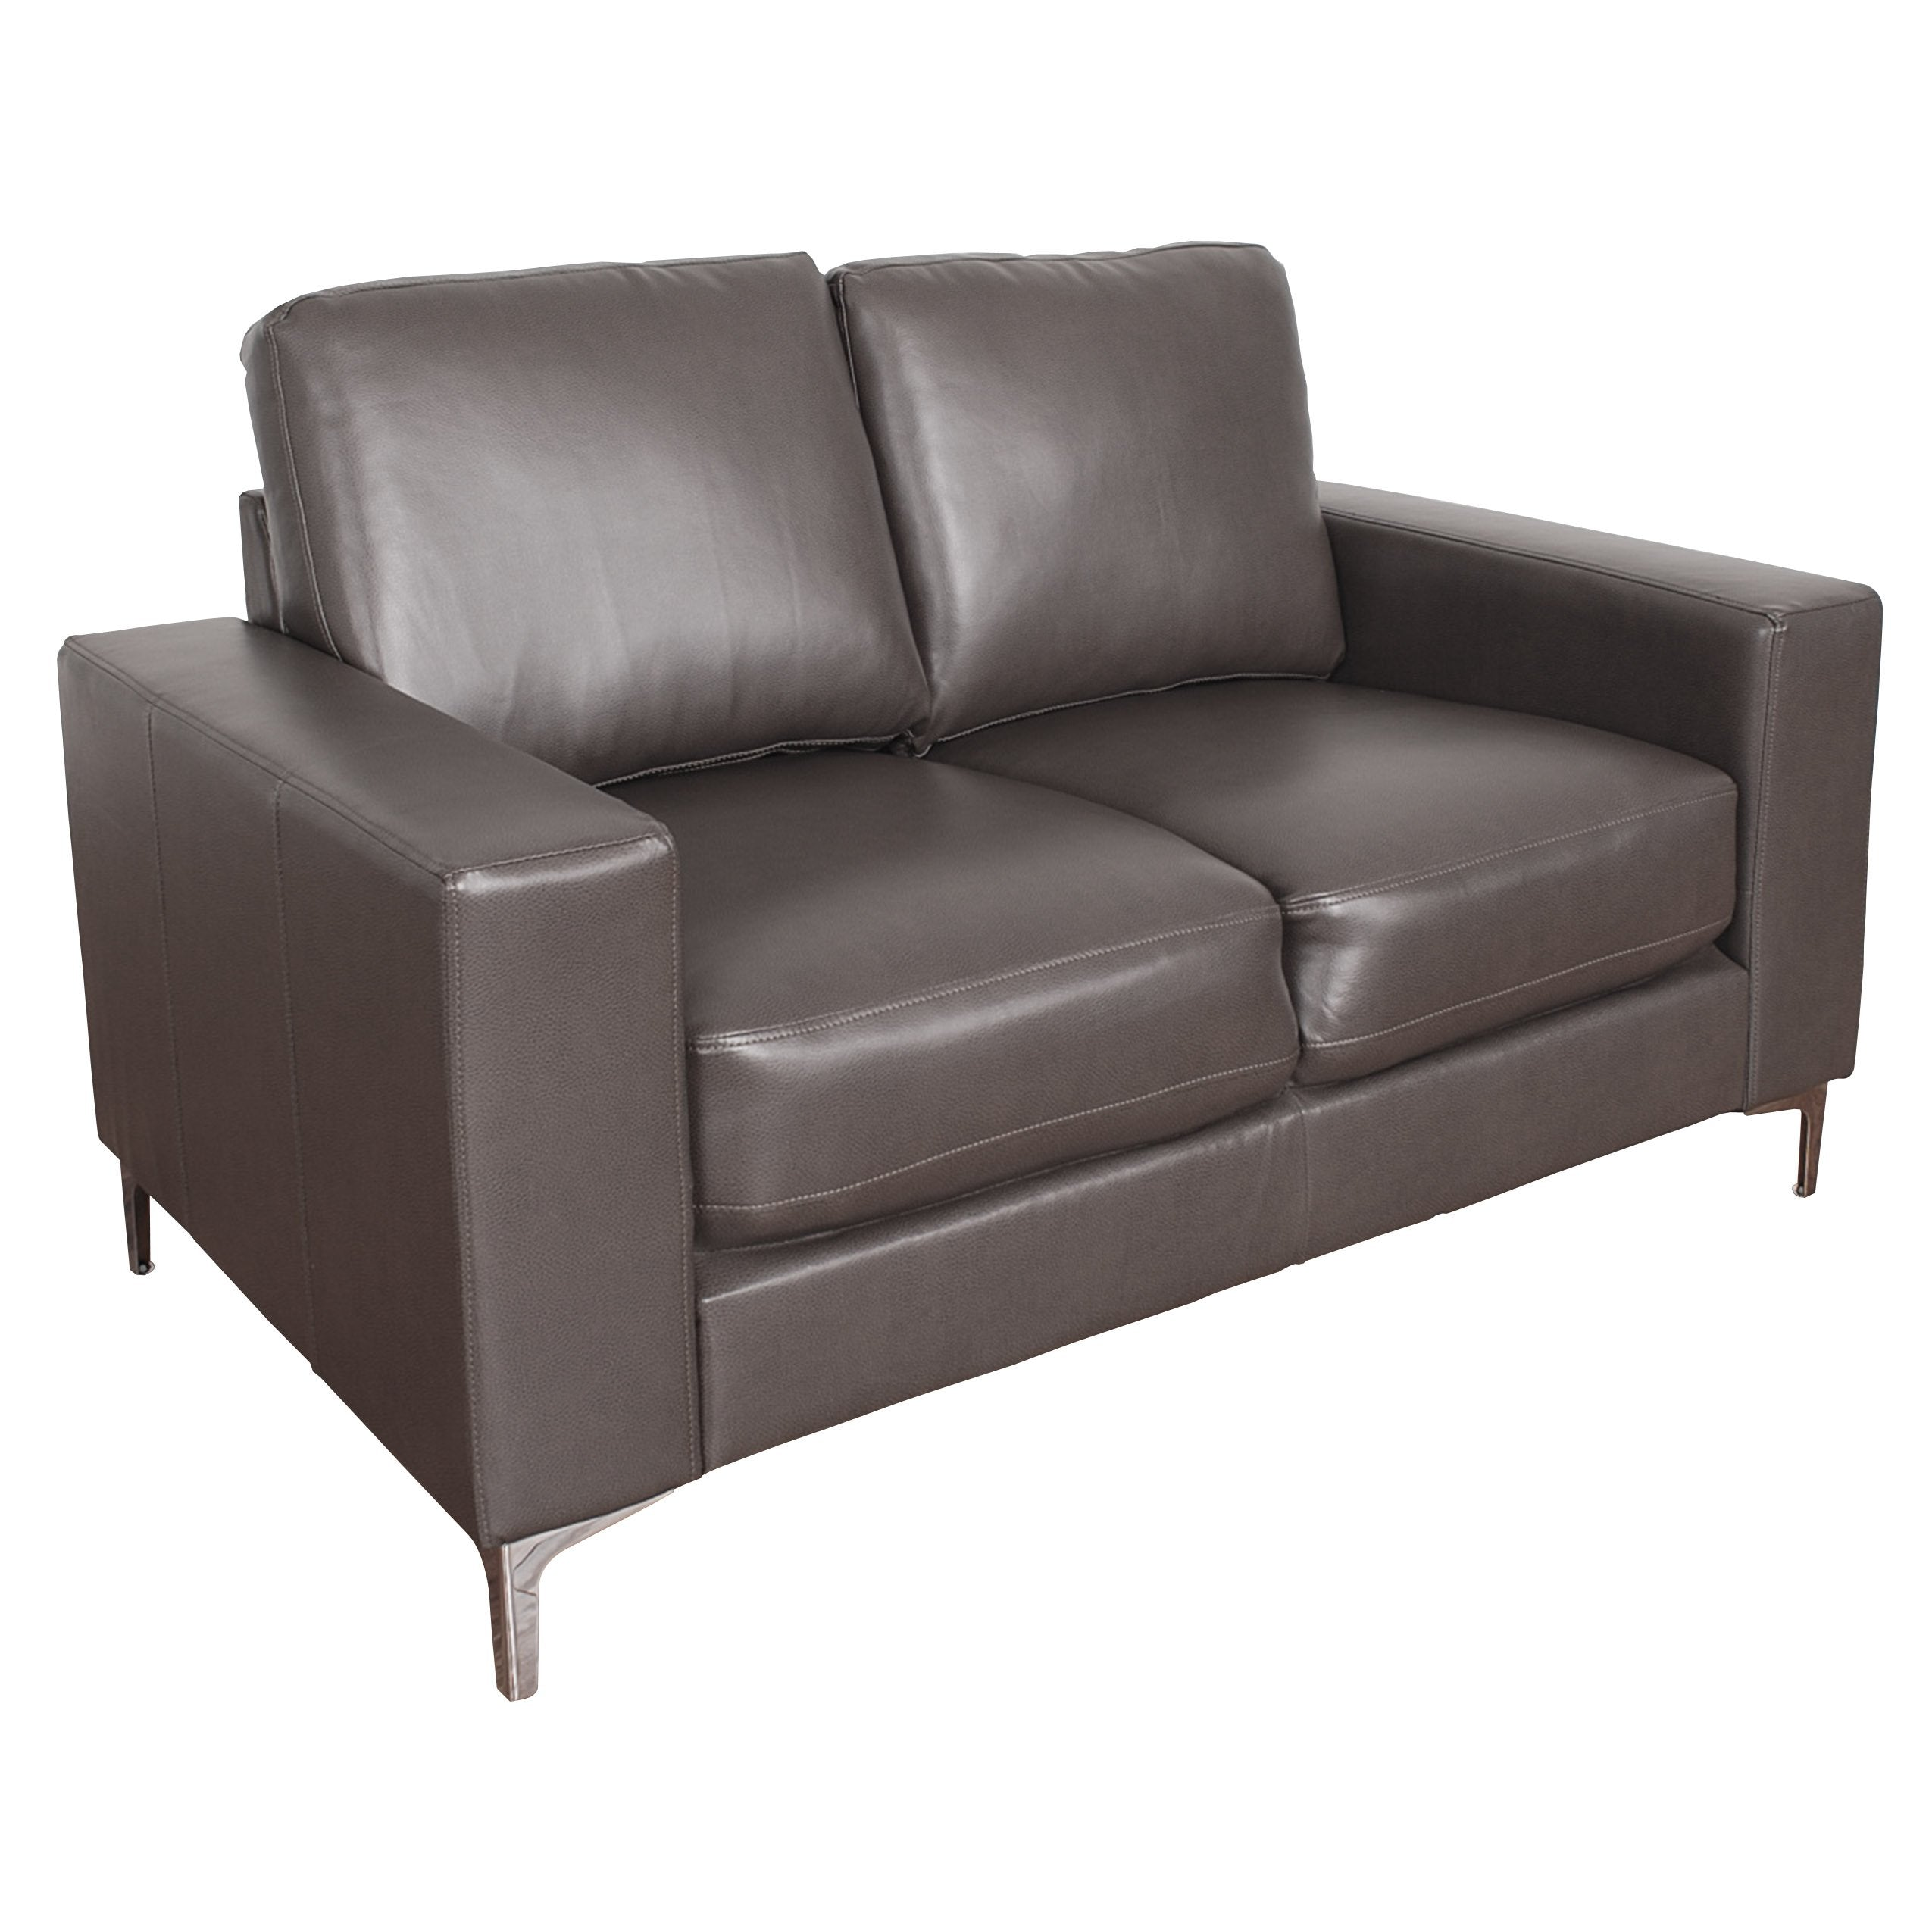 Astounding Contemporary Bonded Leather Loveseat Clearance Gmtry Best Dining Table And Chair Ideas Images Gmtryco